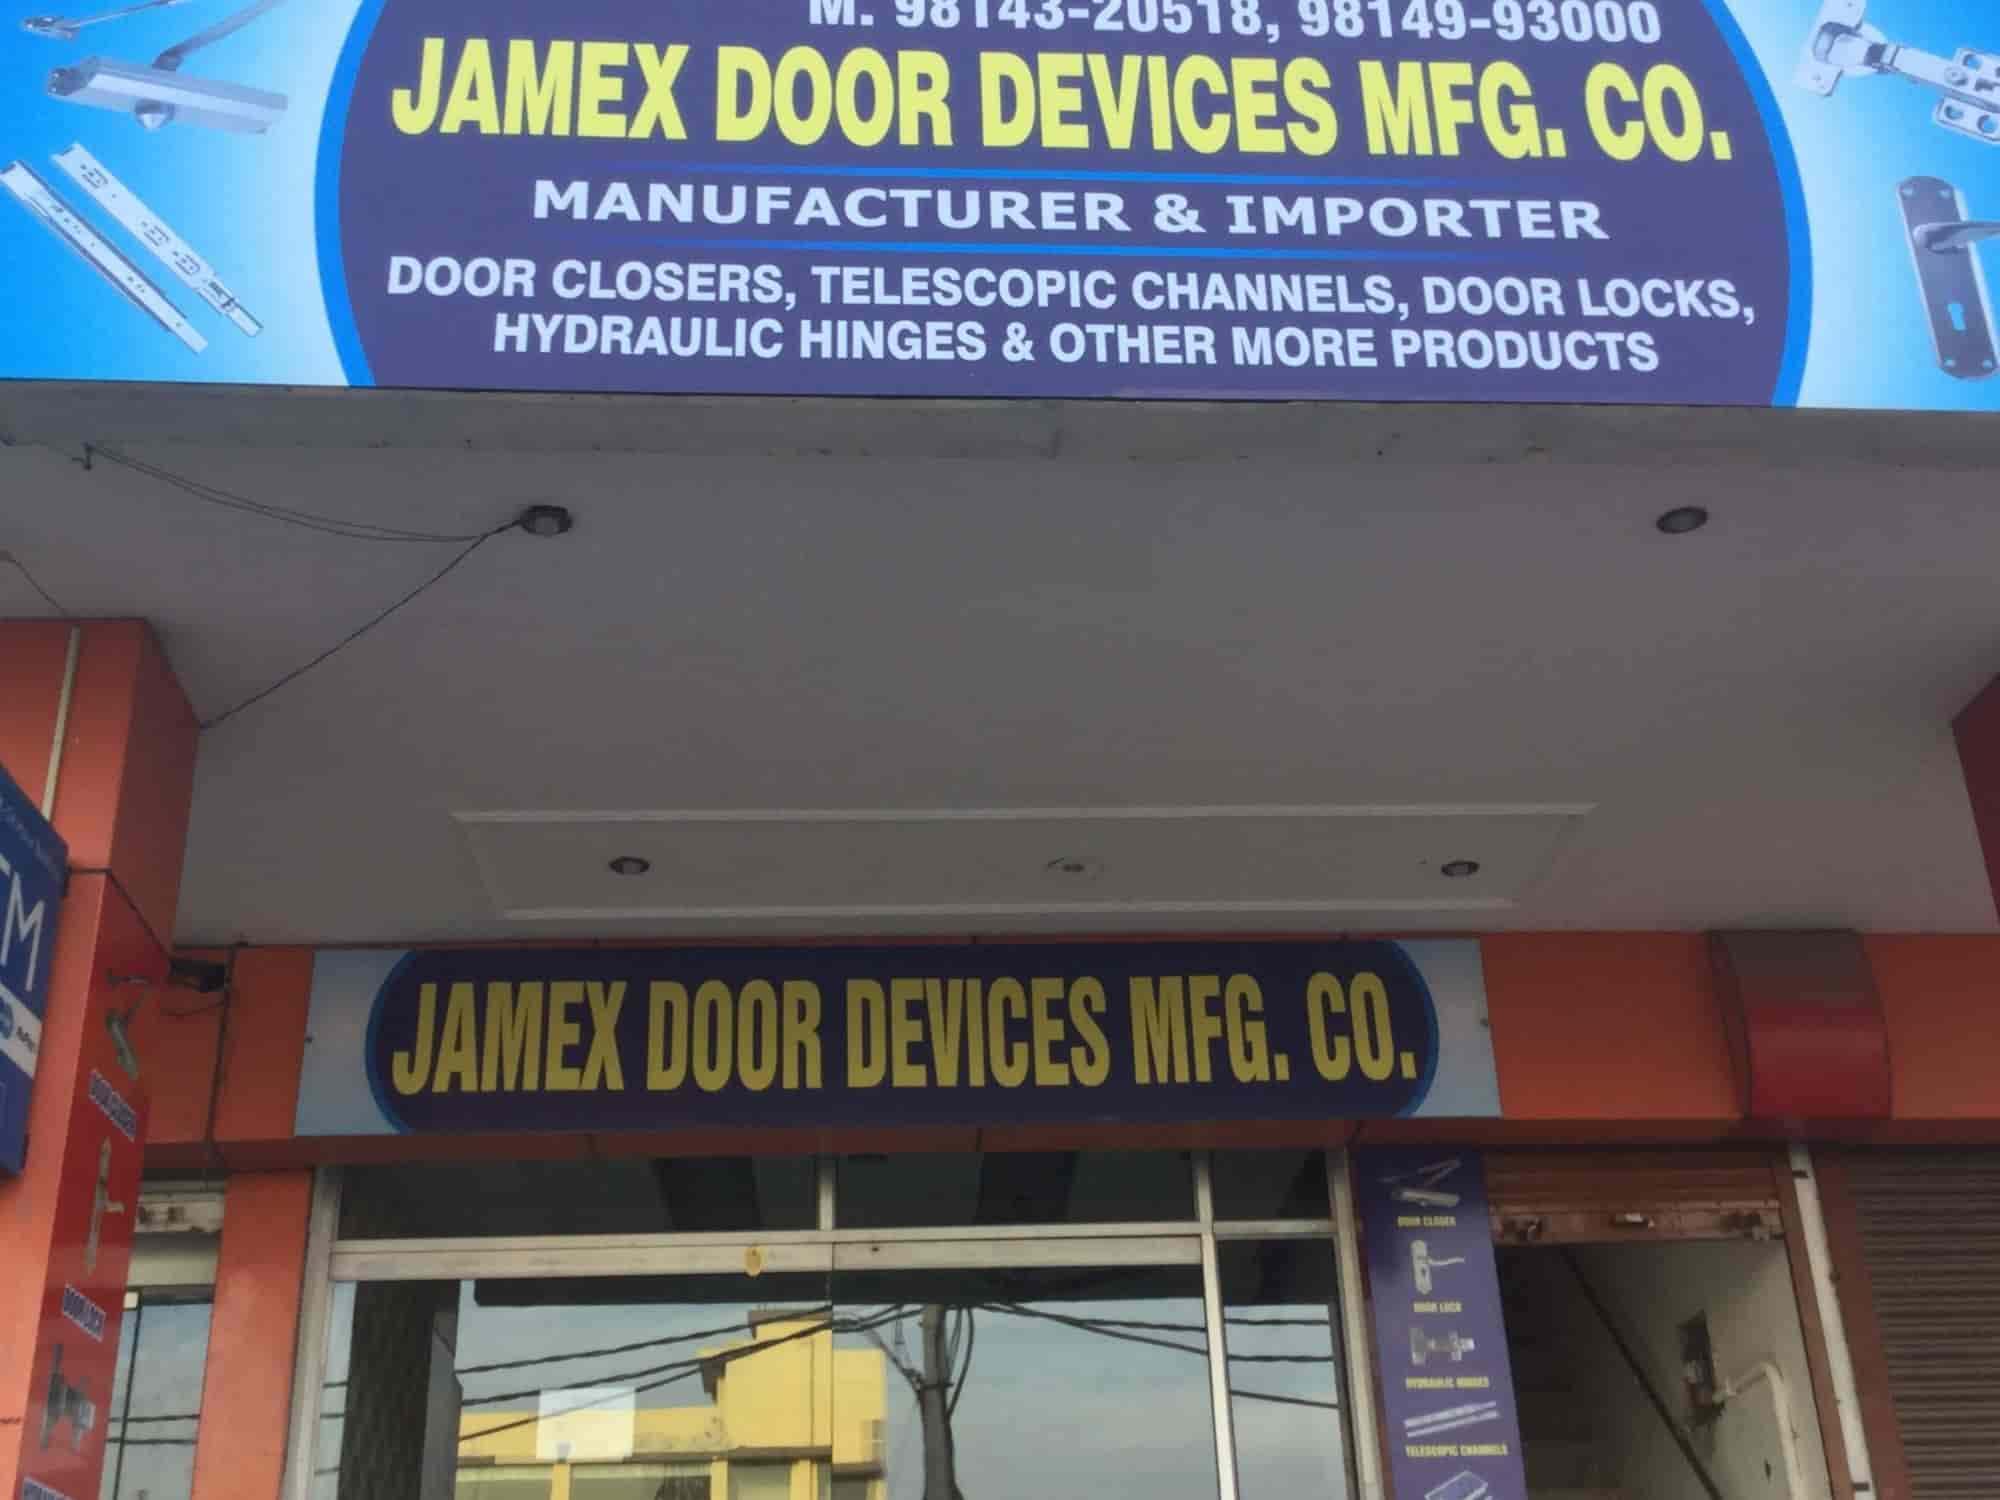 JAMEX DOOR Devices Mfg. Co. & JAMEX DOOR Devices Mfg Co Photos Kharar Chandigarh- Pictures ...